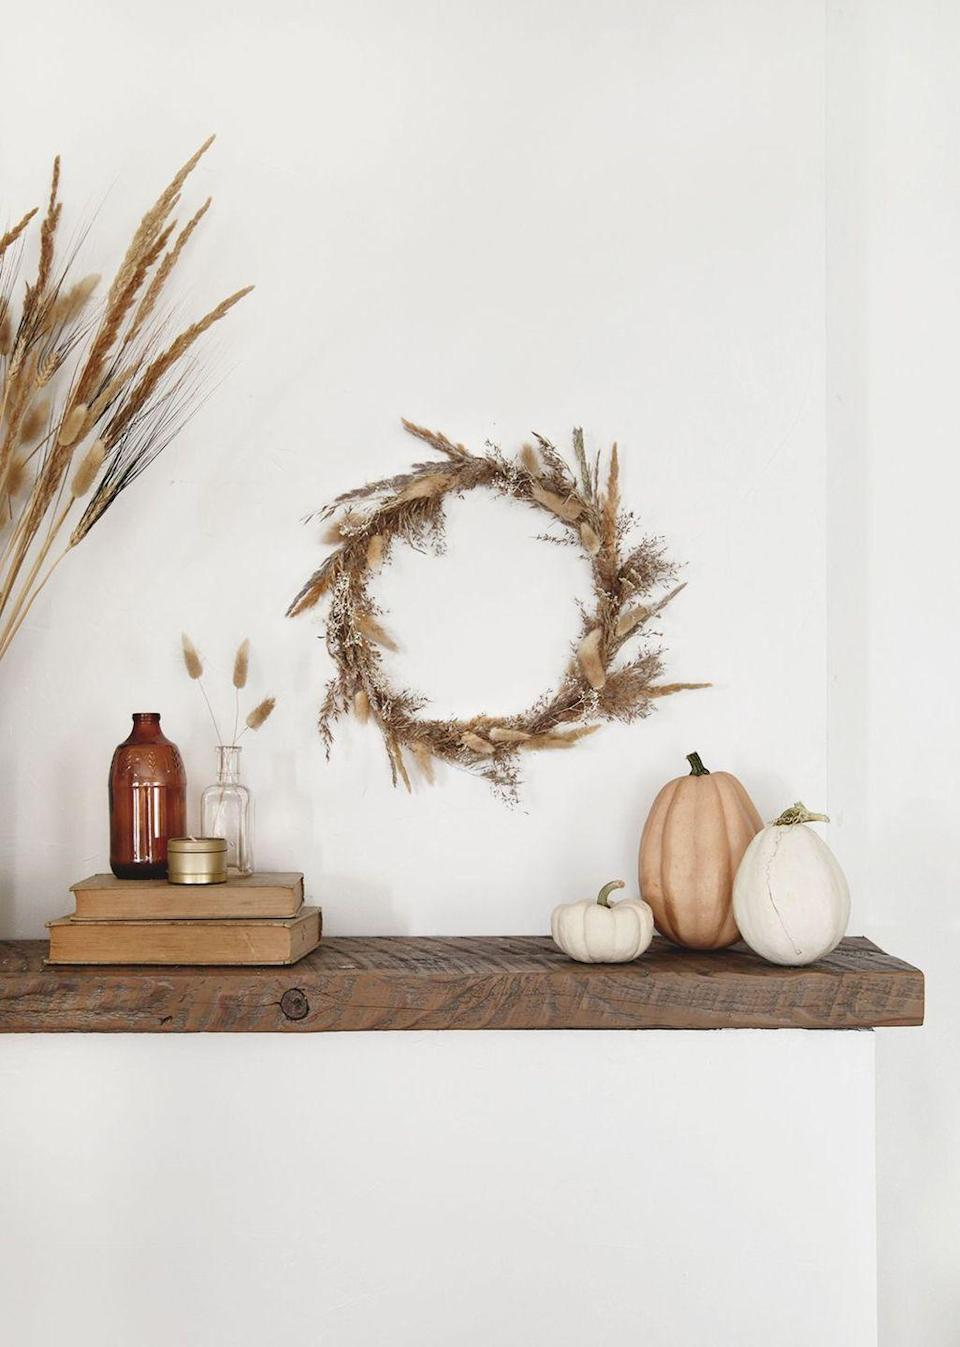 """<p>Dried florals and fall go together like pumpkins and patches! To capture that look, make this lovely dried grass wreath for your mantel.</p><p><strong>Get the tutorial at <a href=""""https://themerrythought.com/diy/diy-dried-grass-fall-wreath/"""" rel=""""nofollow noopener"""" target=""""_blank"""" data-ylk=""""slk:The Merrythought"""" class=""""link rapid-noclick-resp"""">The Merrythought</a>.</strong></p><p><a class=""""link rapid-noclick-resp"""" href=""""https://go.redirectingat.com?id=74968X1596630&url=https%3A%2F%2Fwww.walmart.com%2Fip%2FGorilla-Glue-Dual-Temp-Full-Size-Hot-Glue-Gun%2F210900389&sref=https%3A%2F%2Fwww.thepioneerwoman.com%2Fhome-lifestyle%2Fcrafts-diy%2Fg36891743%2Ffall-mantel-decorations%2F"""" rel=""""nofollow noopener"""" target=""""_blank"""" data-ylk=""""slk:SHOP HOT GLUE GUNS"""">SHOP HOT GLUE GUNS</a></p>"""